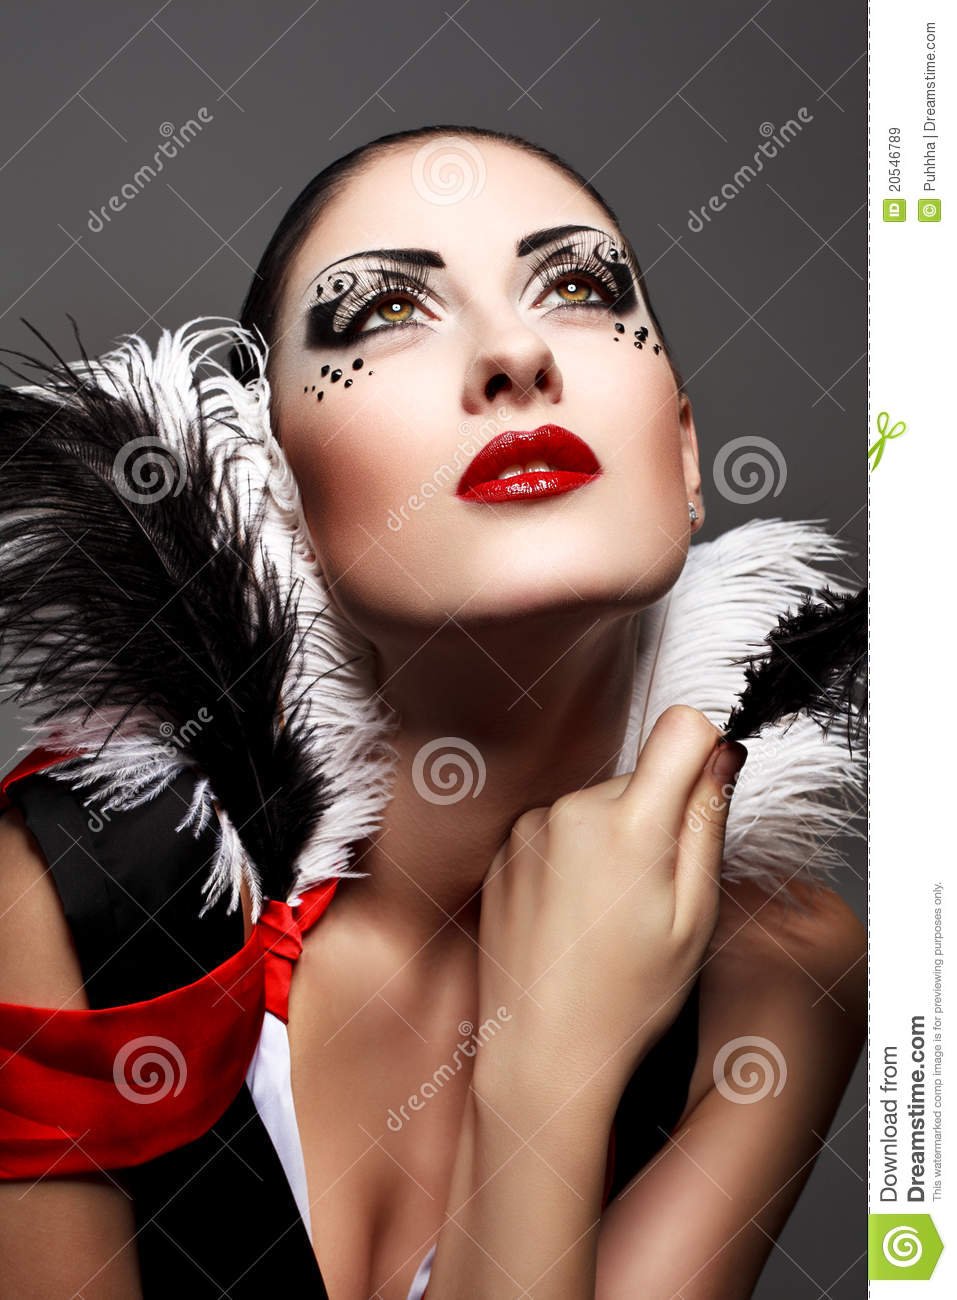 Nice Makeup Tutorial: Beauty Royalty Free Stock Images